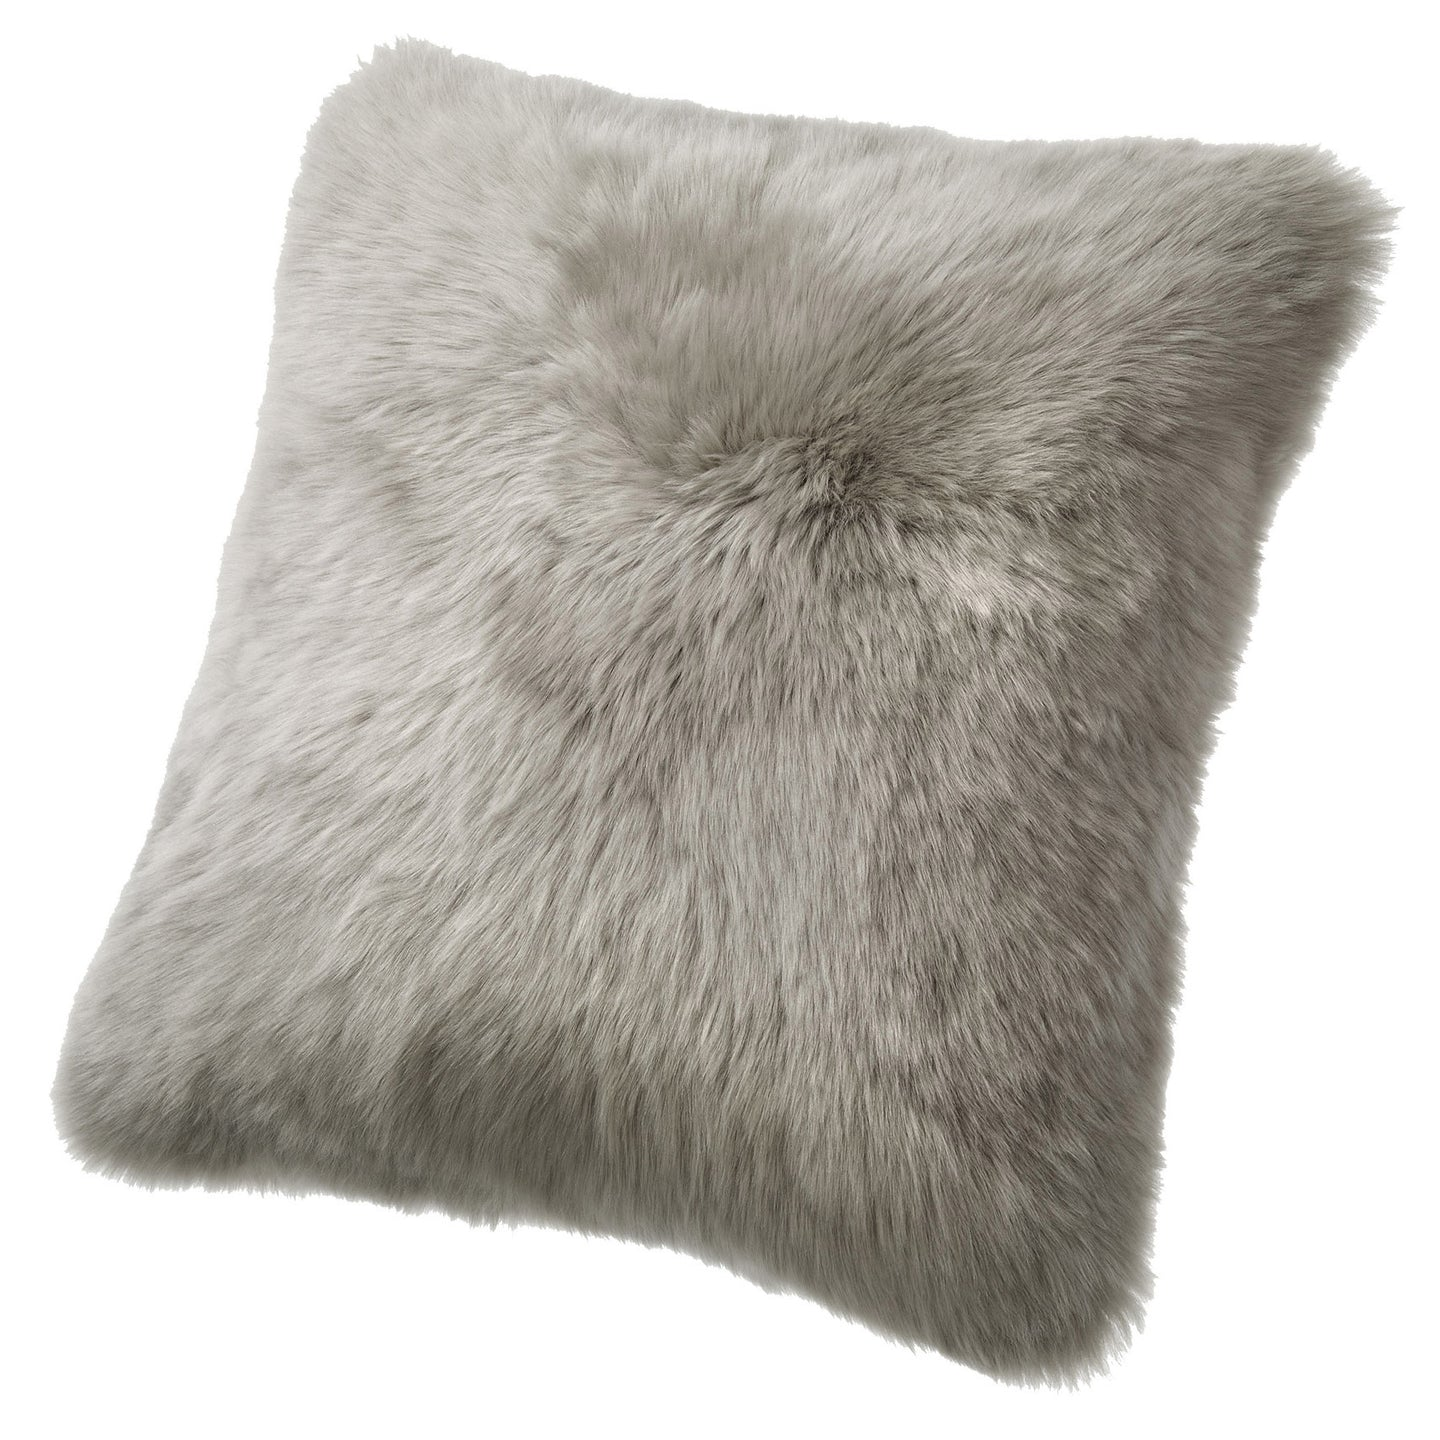 SHEARLING PILLOW - VOLE LIGHT GREY